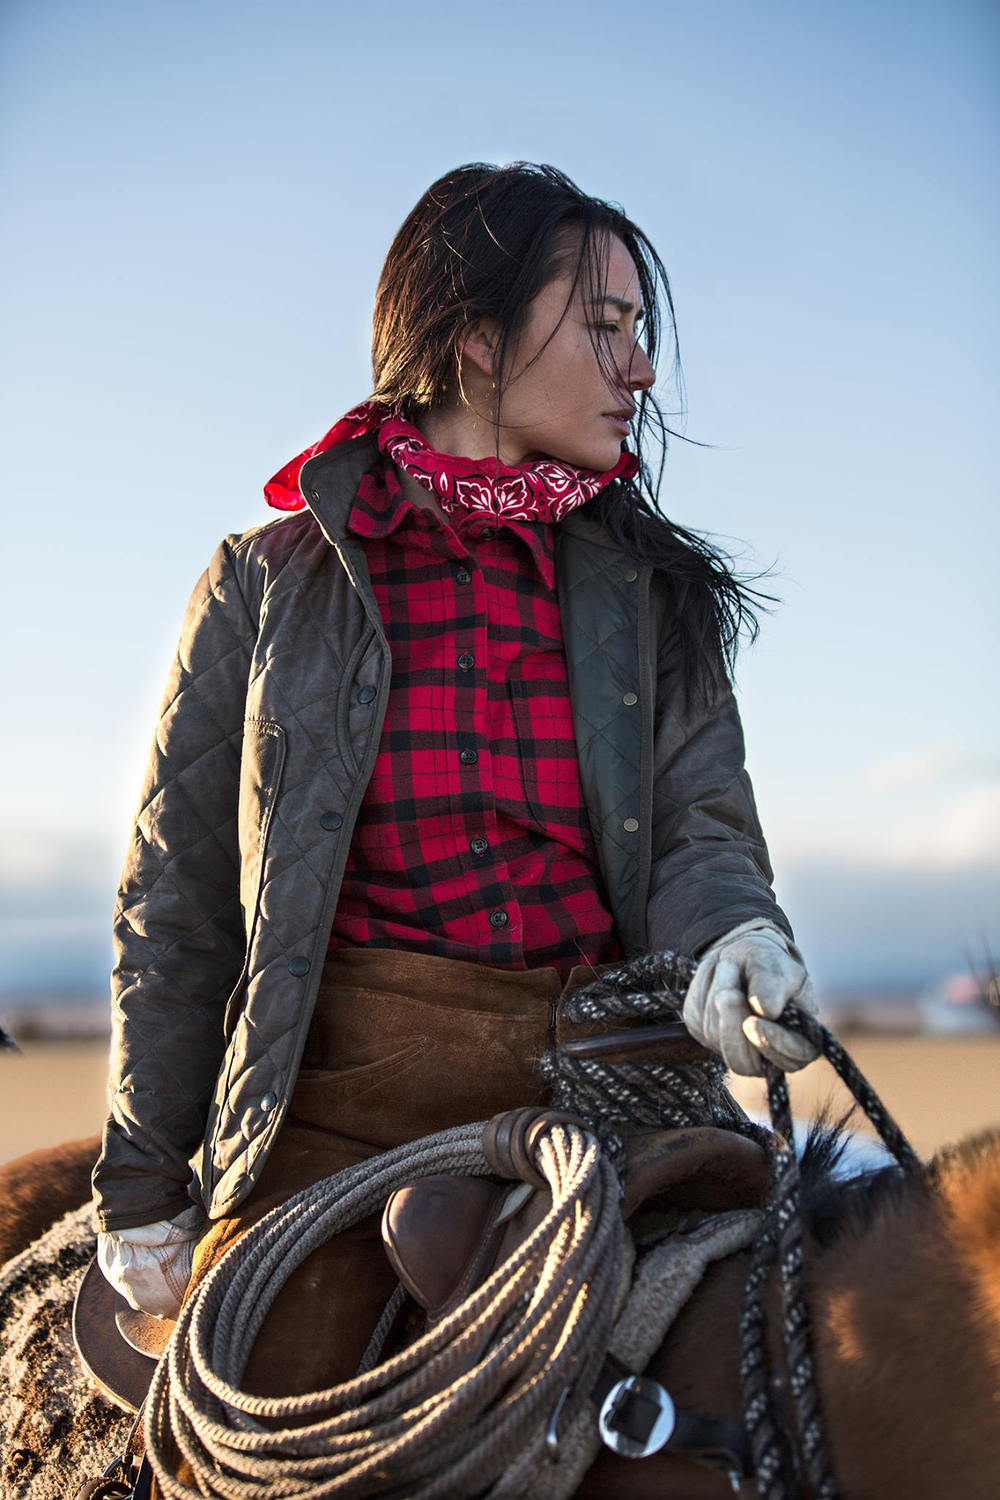 Channeling my roots as I modeled for Filson clothing a few months ago.